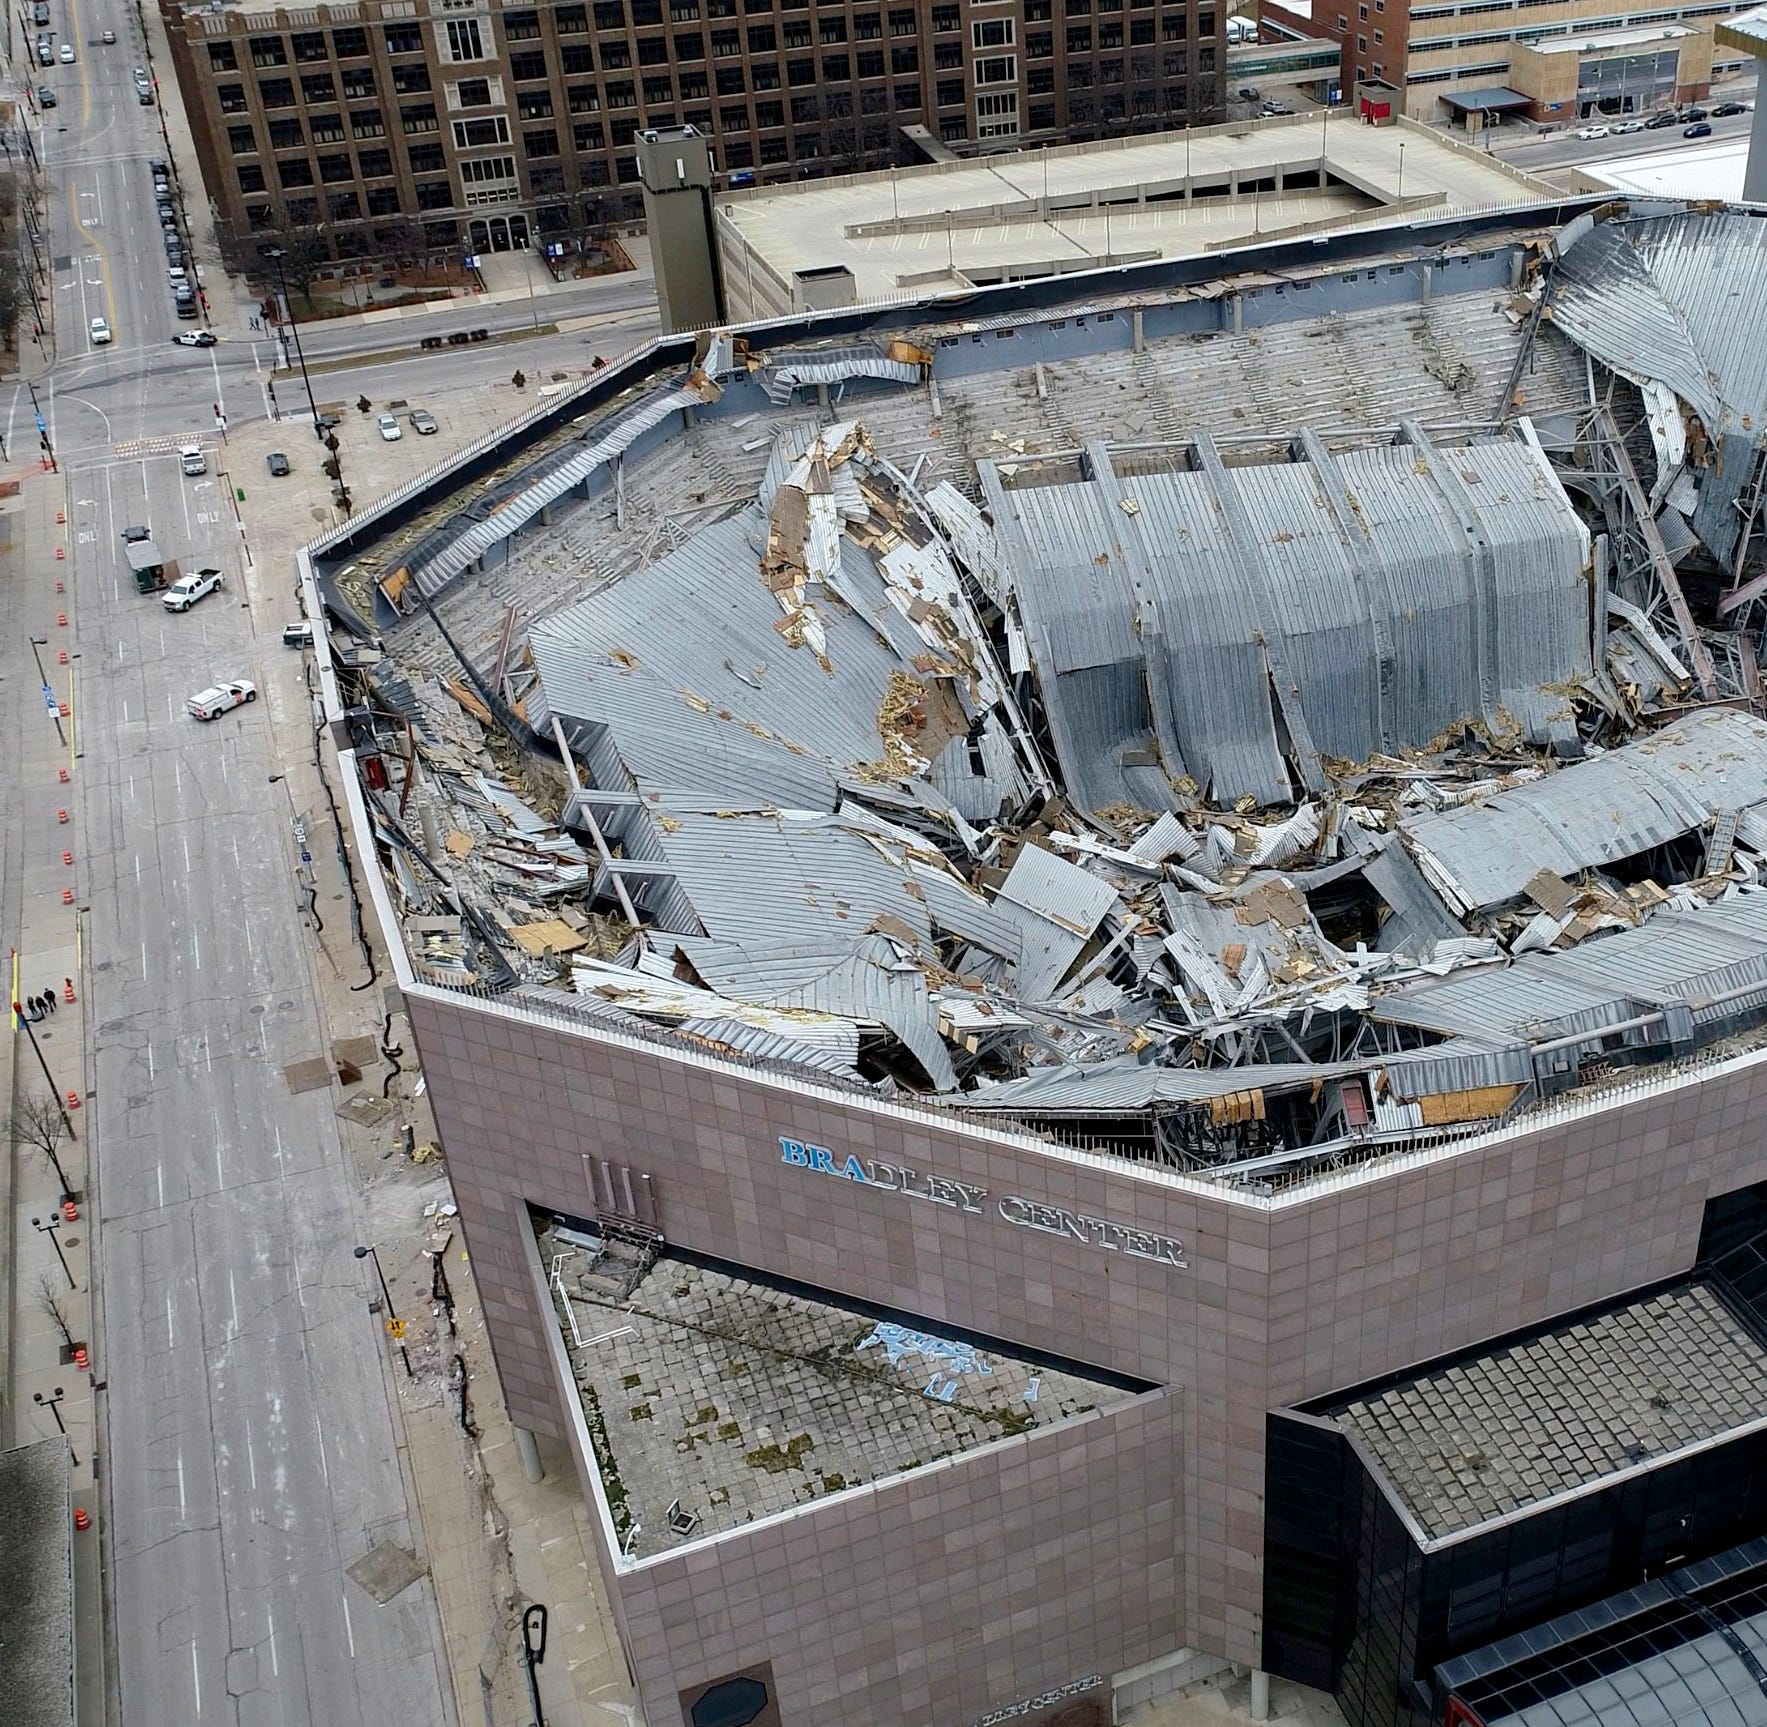 Check out the implosion of the Bradley Center roof from INSIDE the building